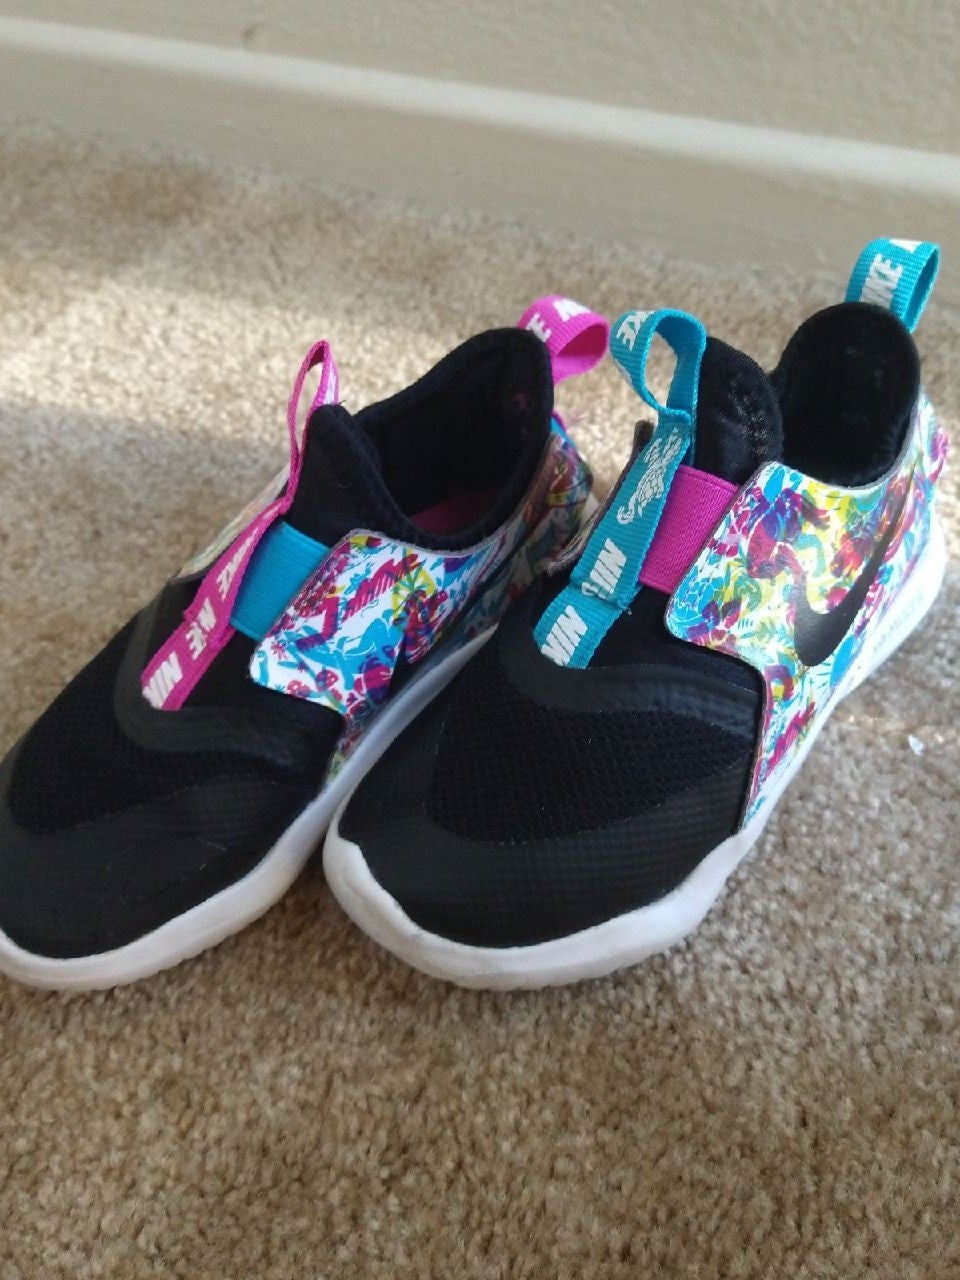 Nike sz 10 toddler girls flex runner